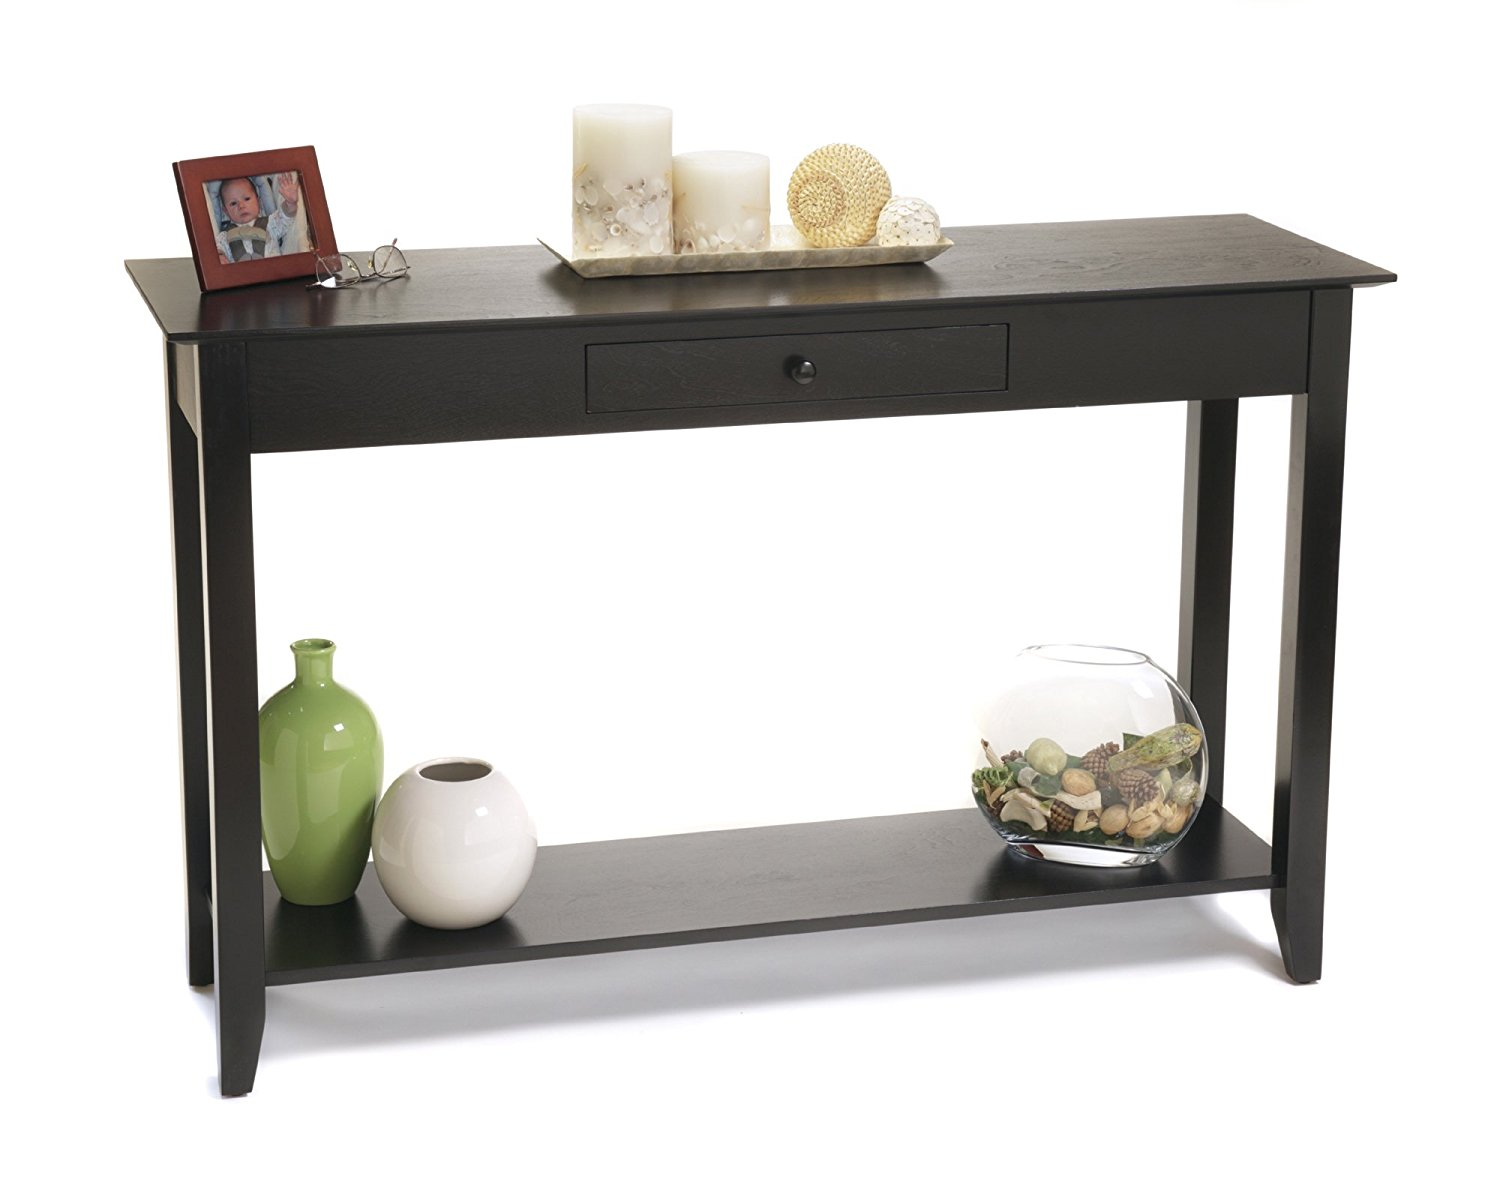 Convenience Concepts American Heritage Console Table with Drawer and Shelf, Black